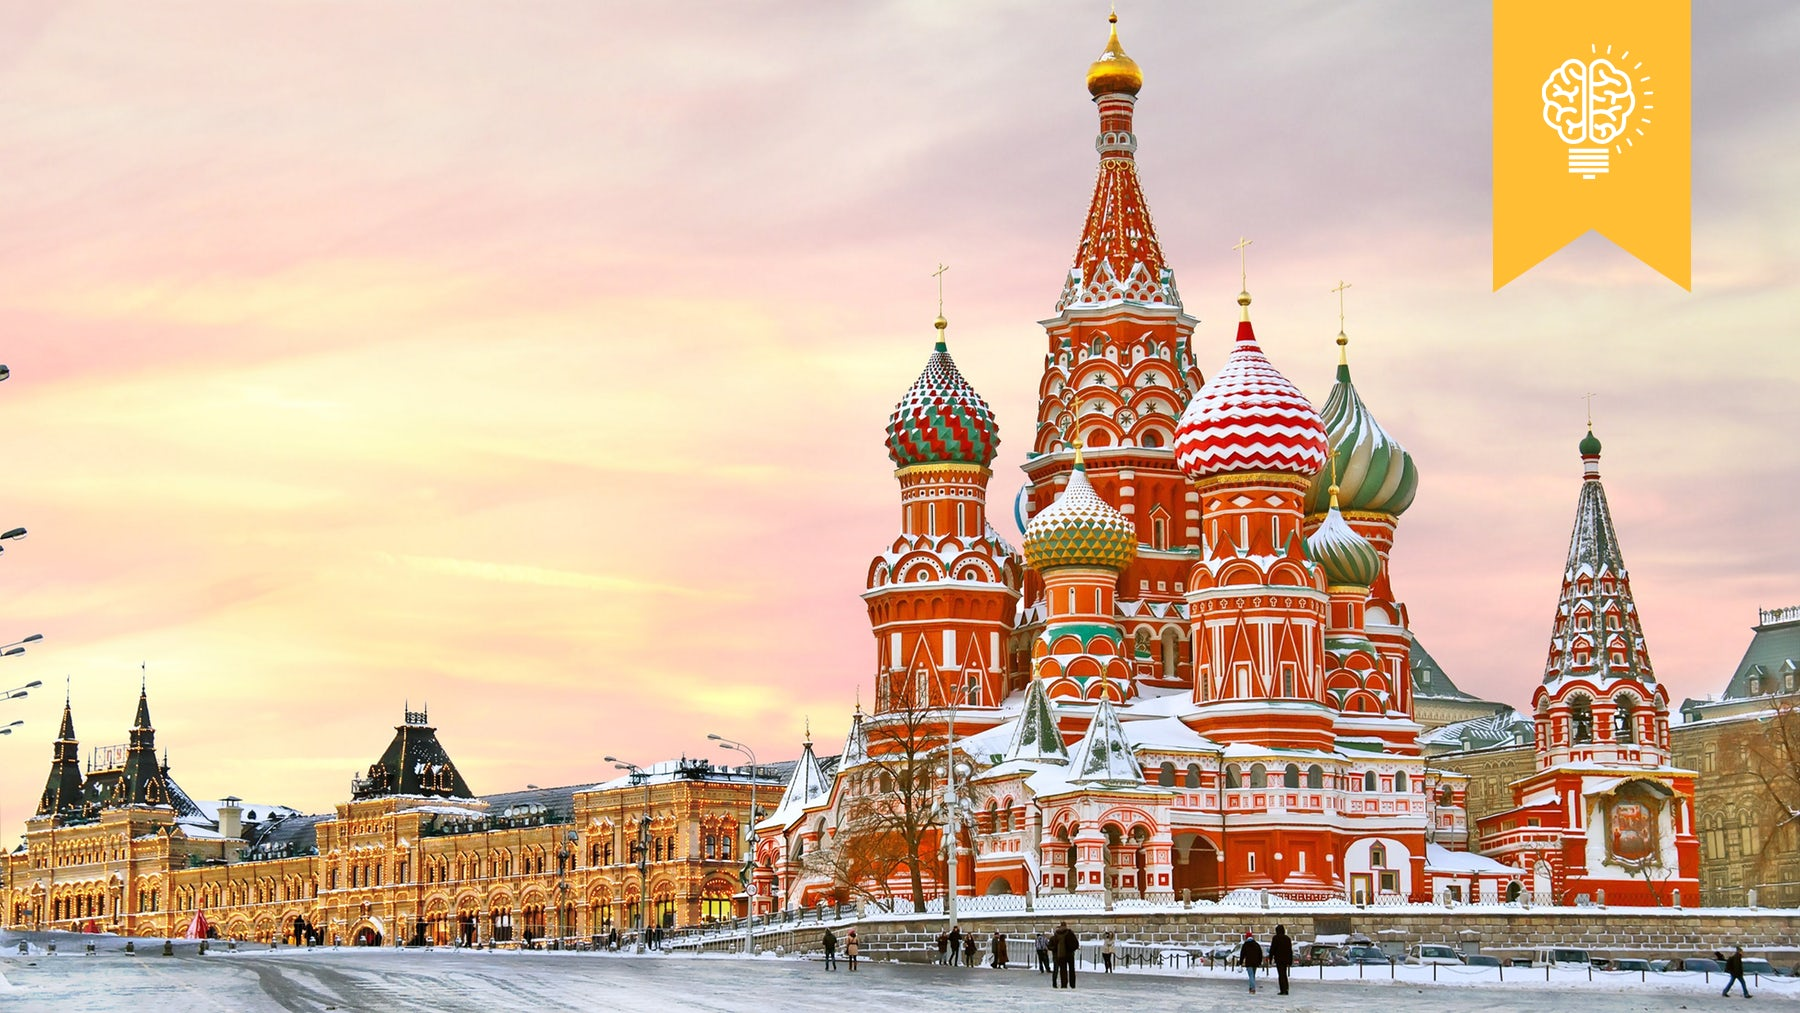 Red Square in Moscow, Russia | Source: Shutterstock